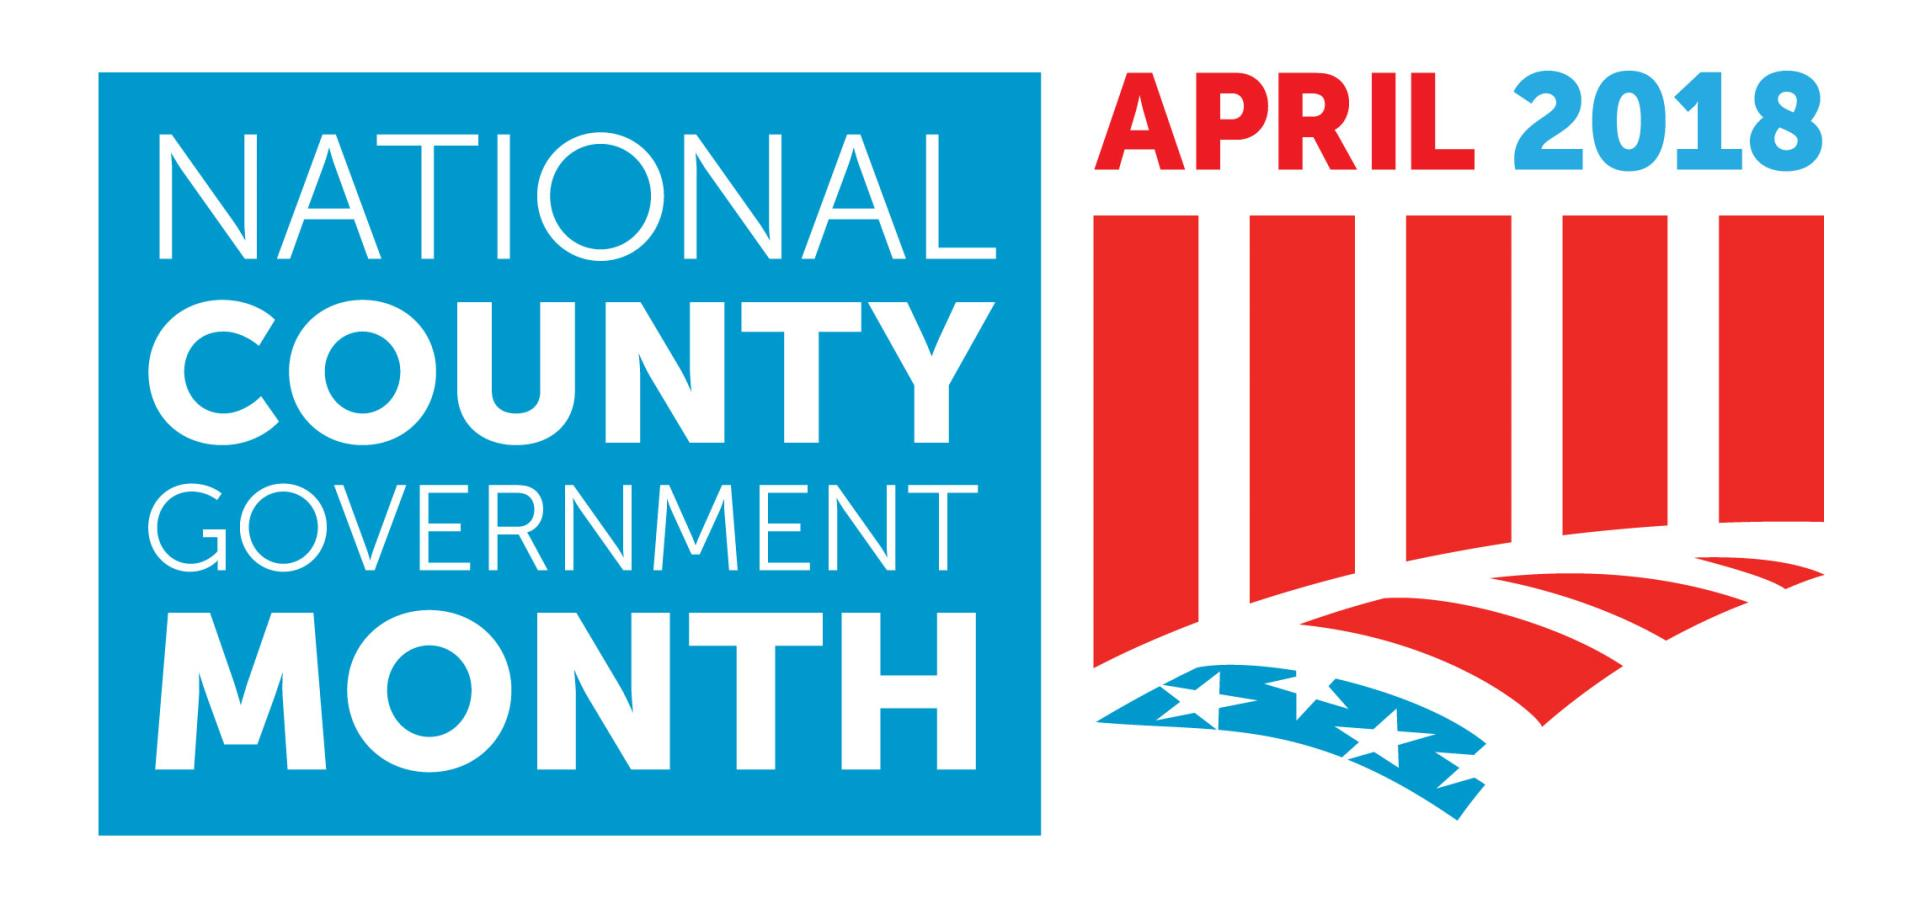 National County Government Month logo 2018